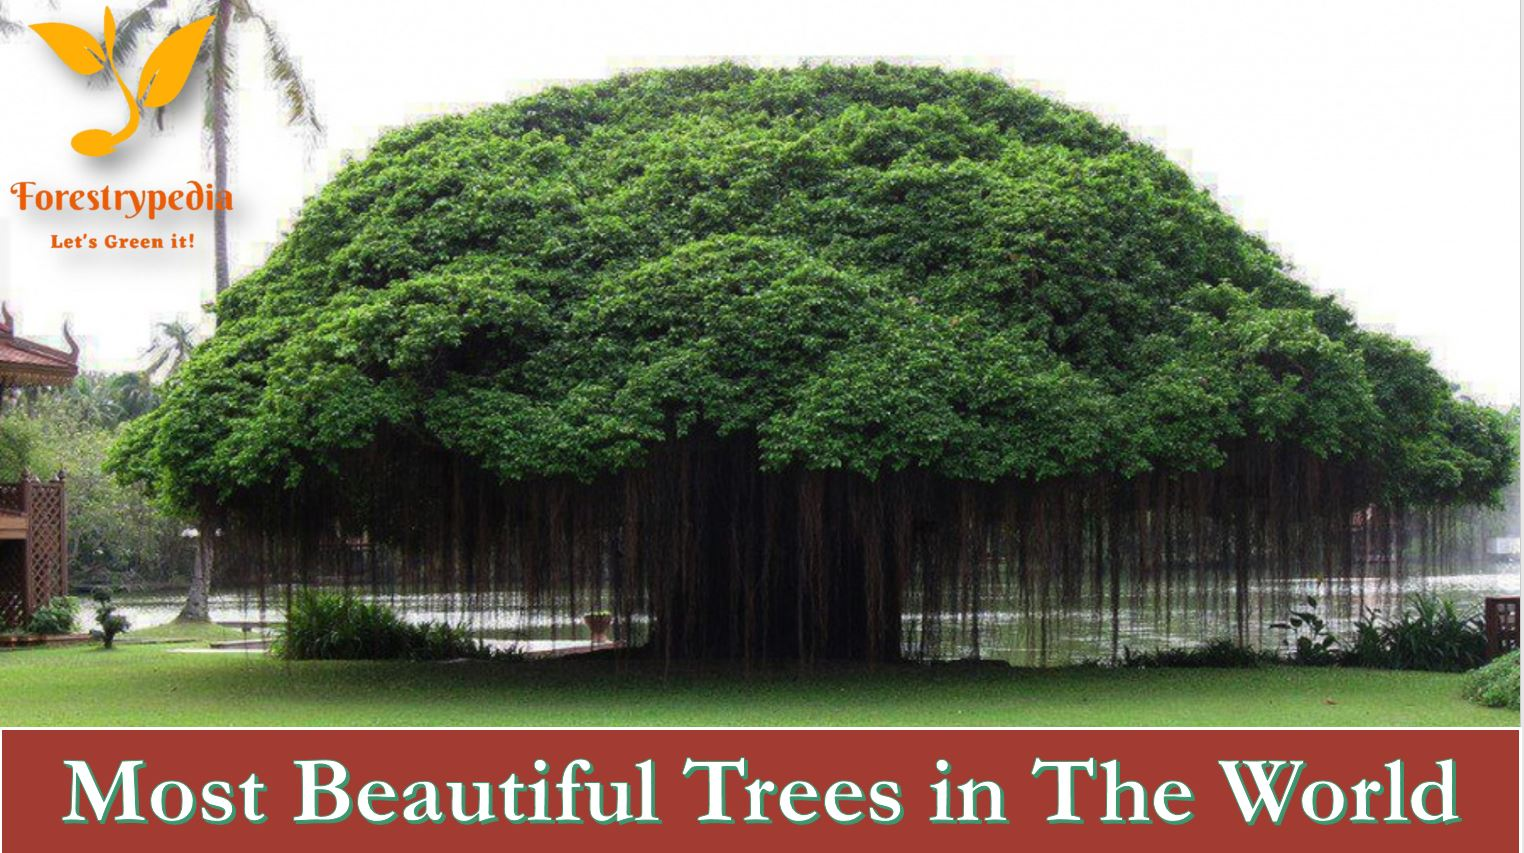 The 14 Most Beautiful Trees in The World - Forestrypedia